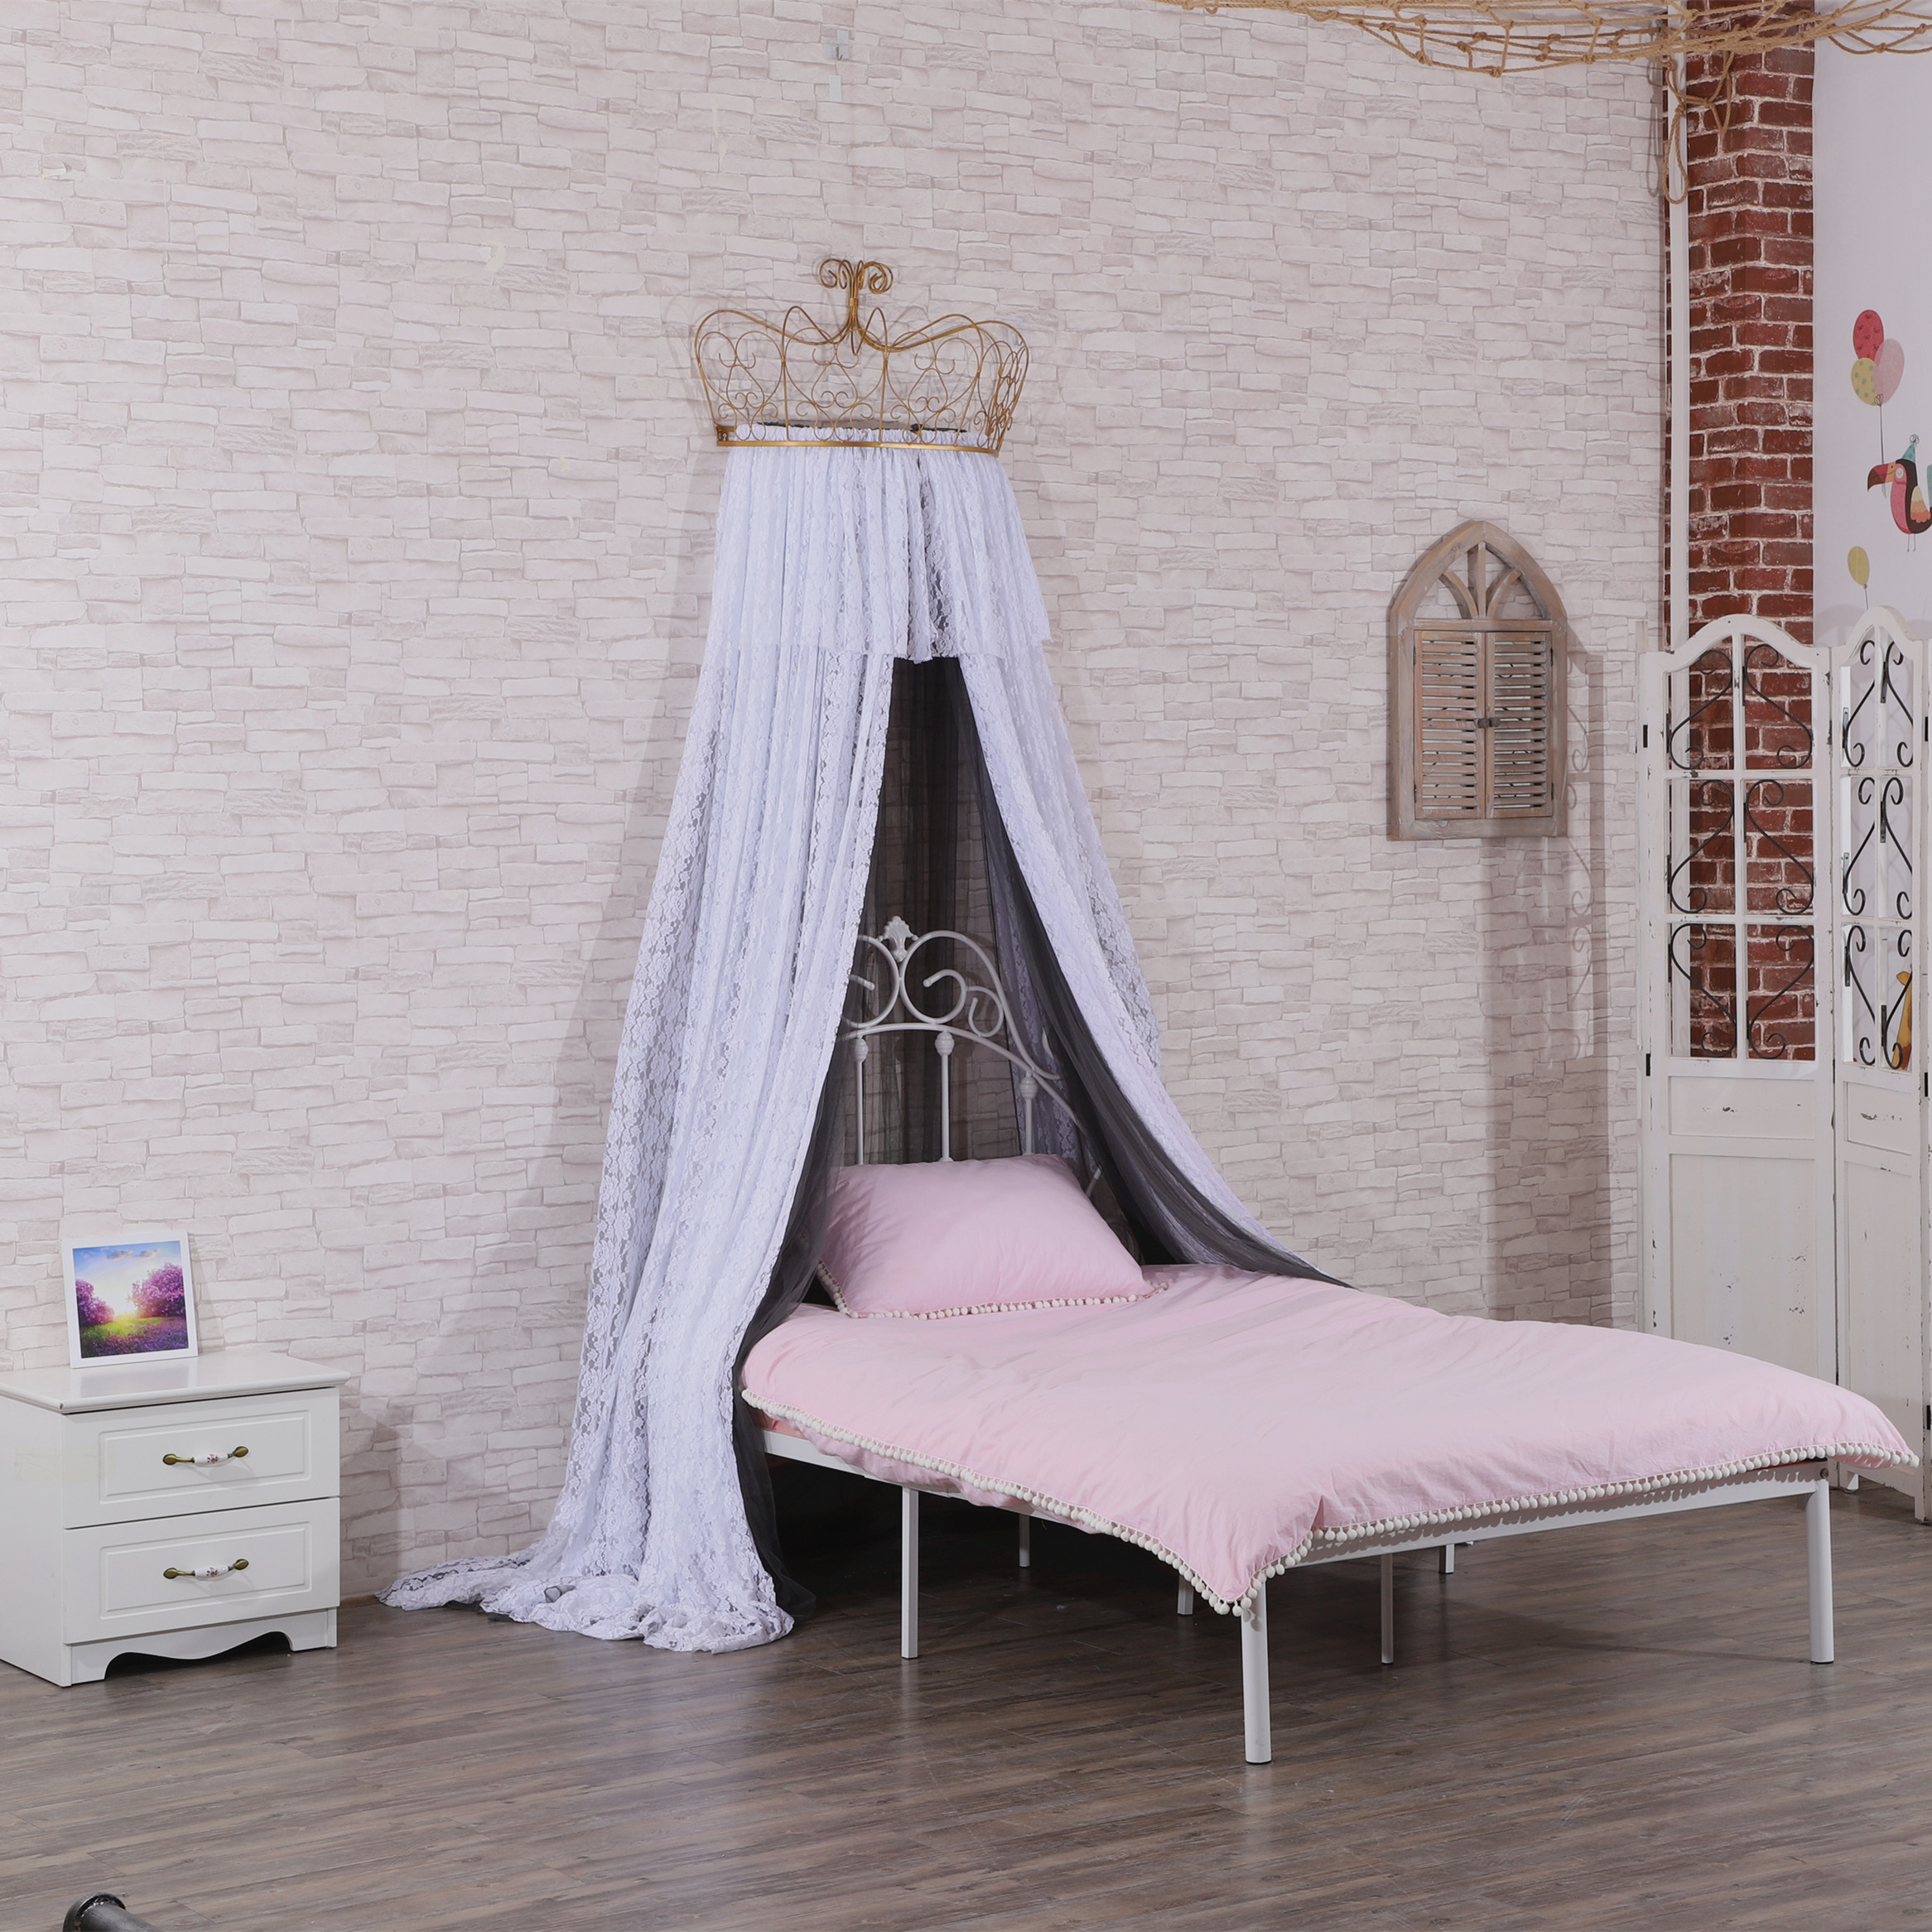 Latest Design Princess Crown Top Mosquito Nets Lace Bed Curtains